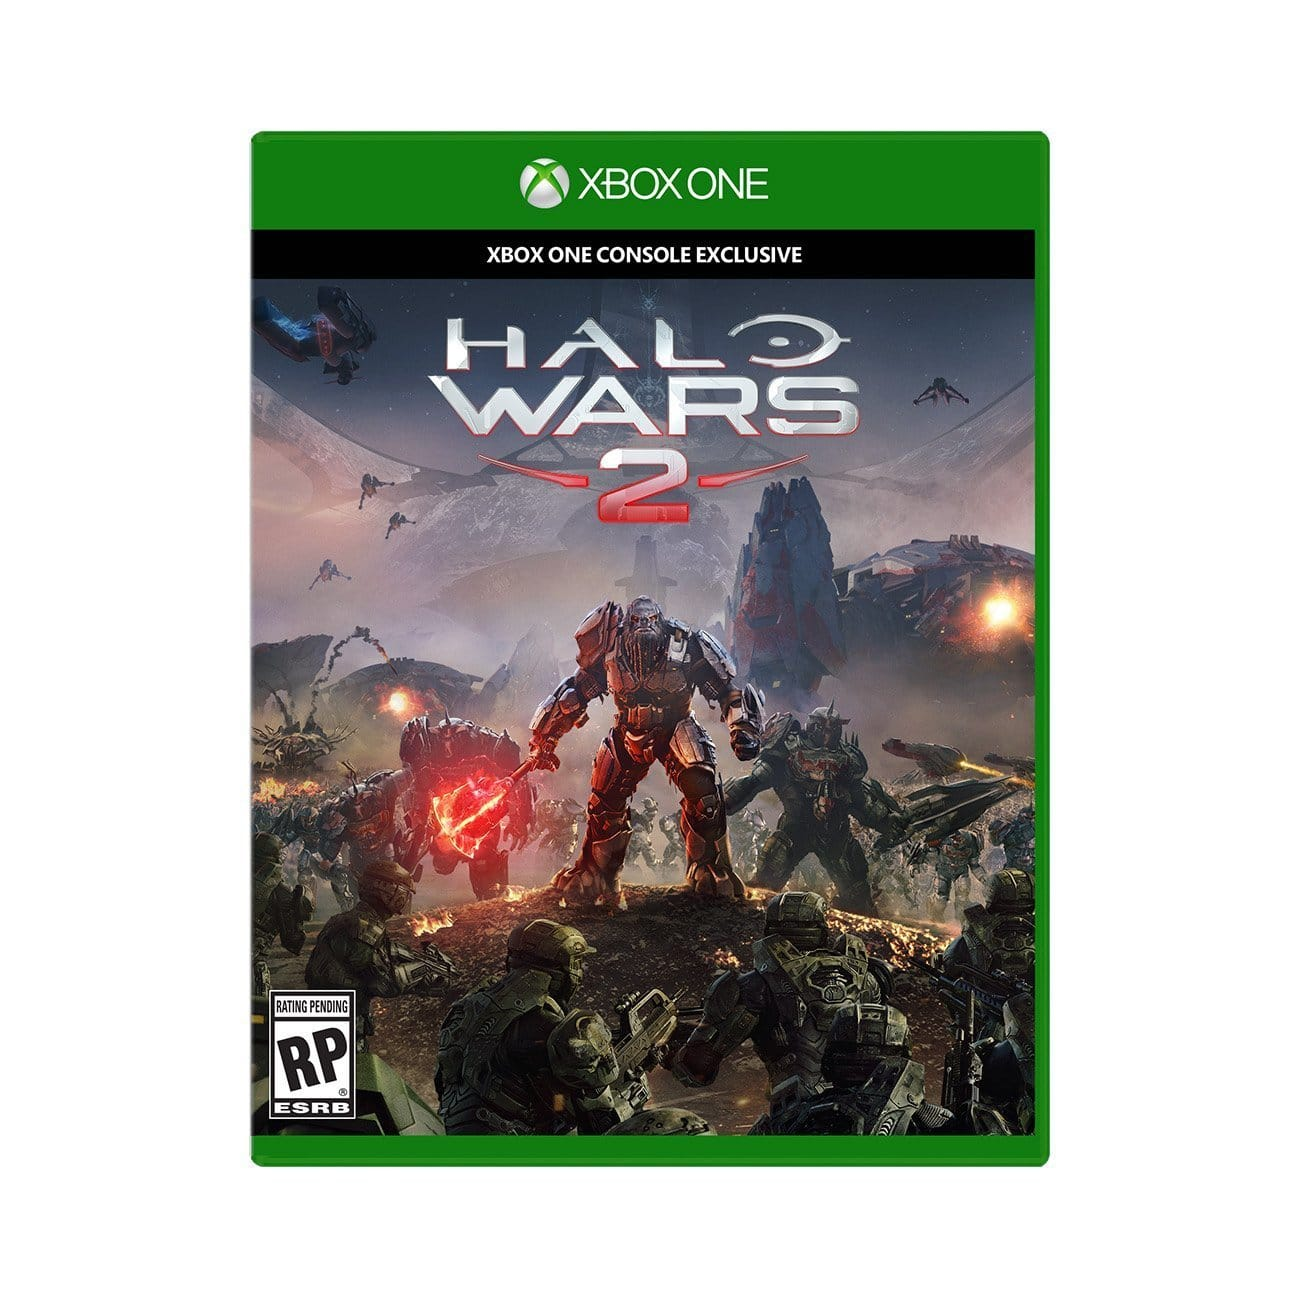 Halo Wars 2 Open Beta on XBOX One June 13th-20th